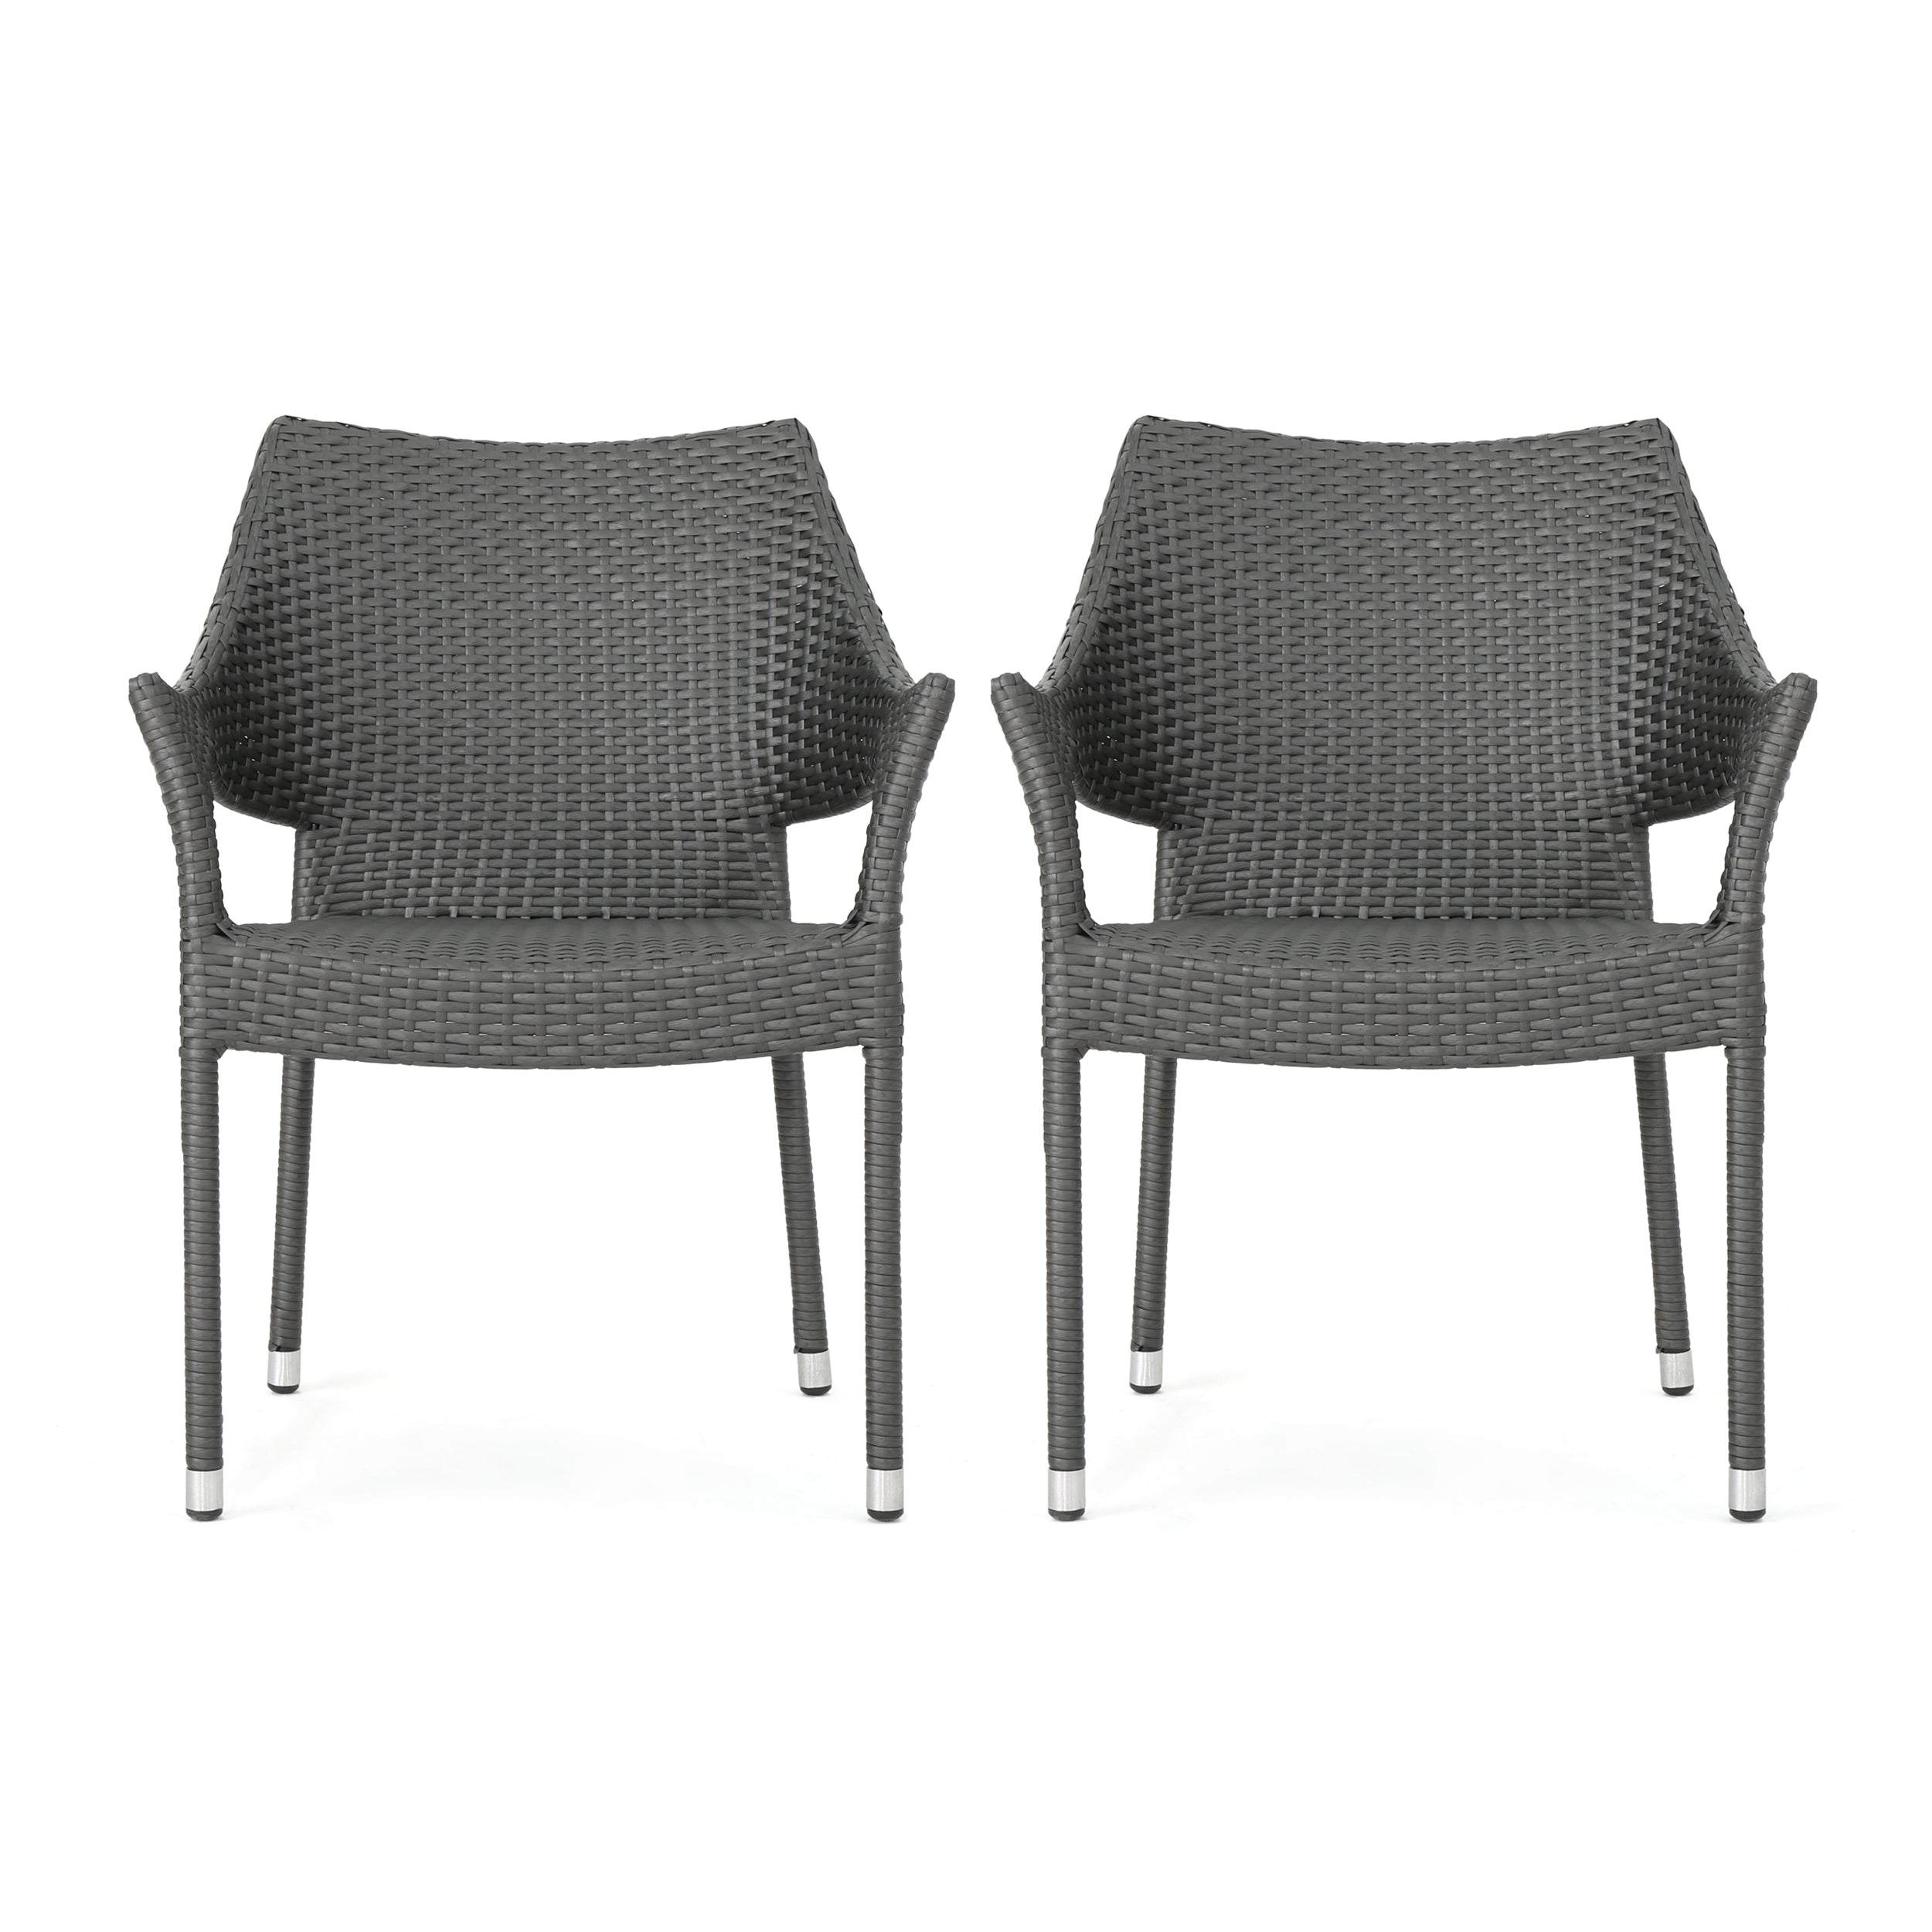 Alameda Modern Outdoor Gray Wicker Stacking Armchairs Set of 2 Default Title